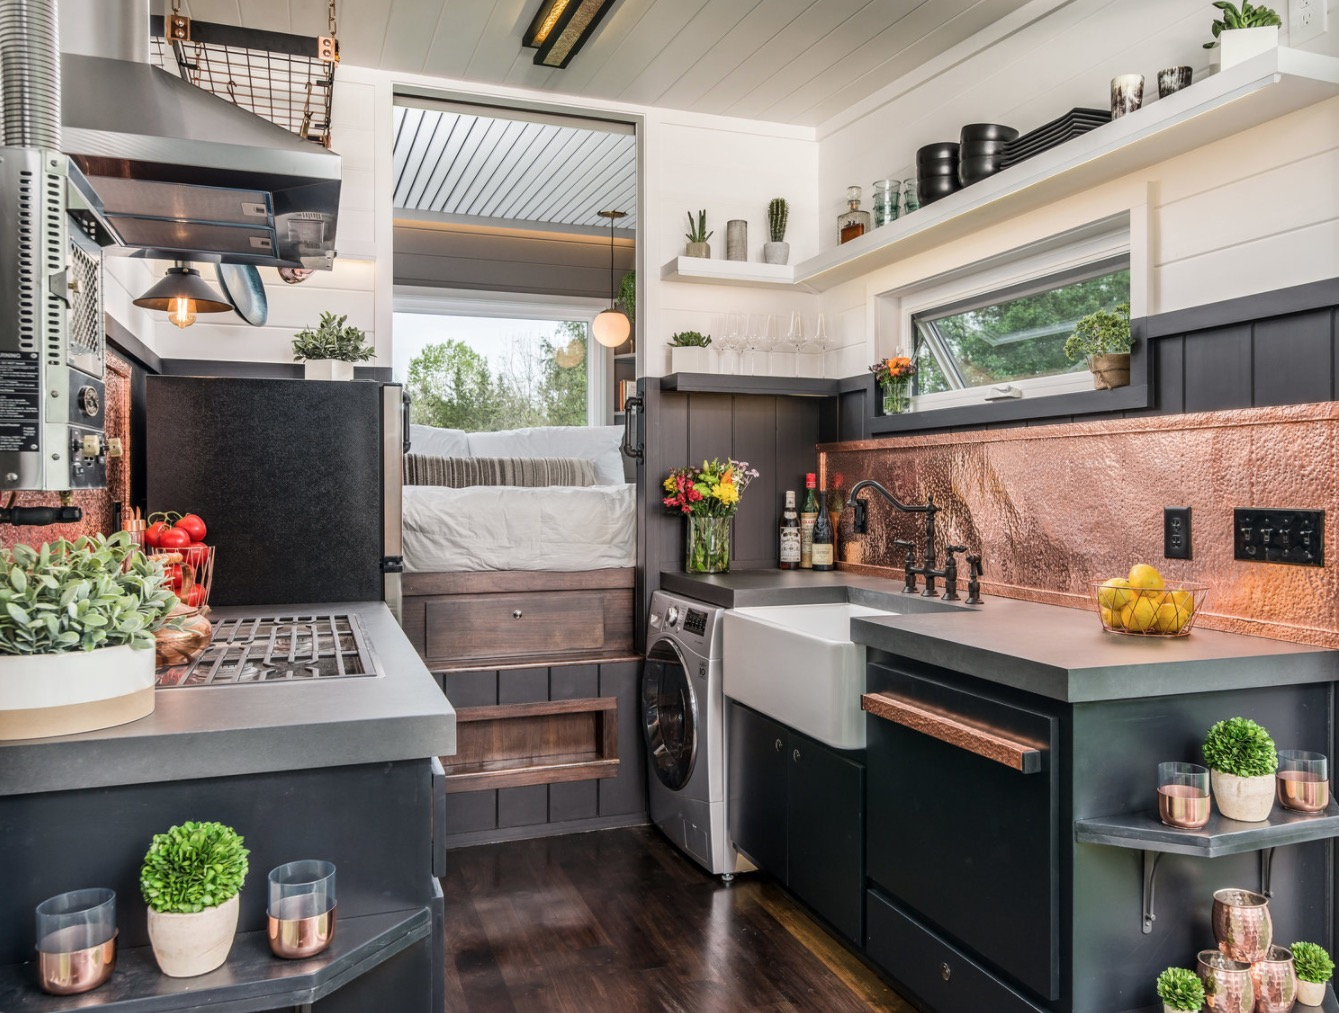 Family of Three's Incredible Tiny House